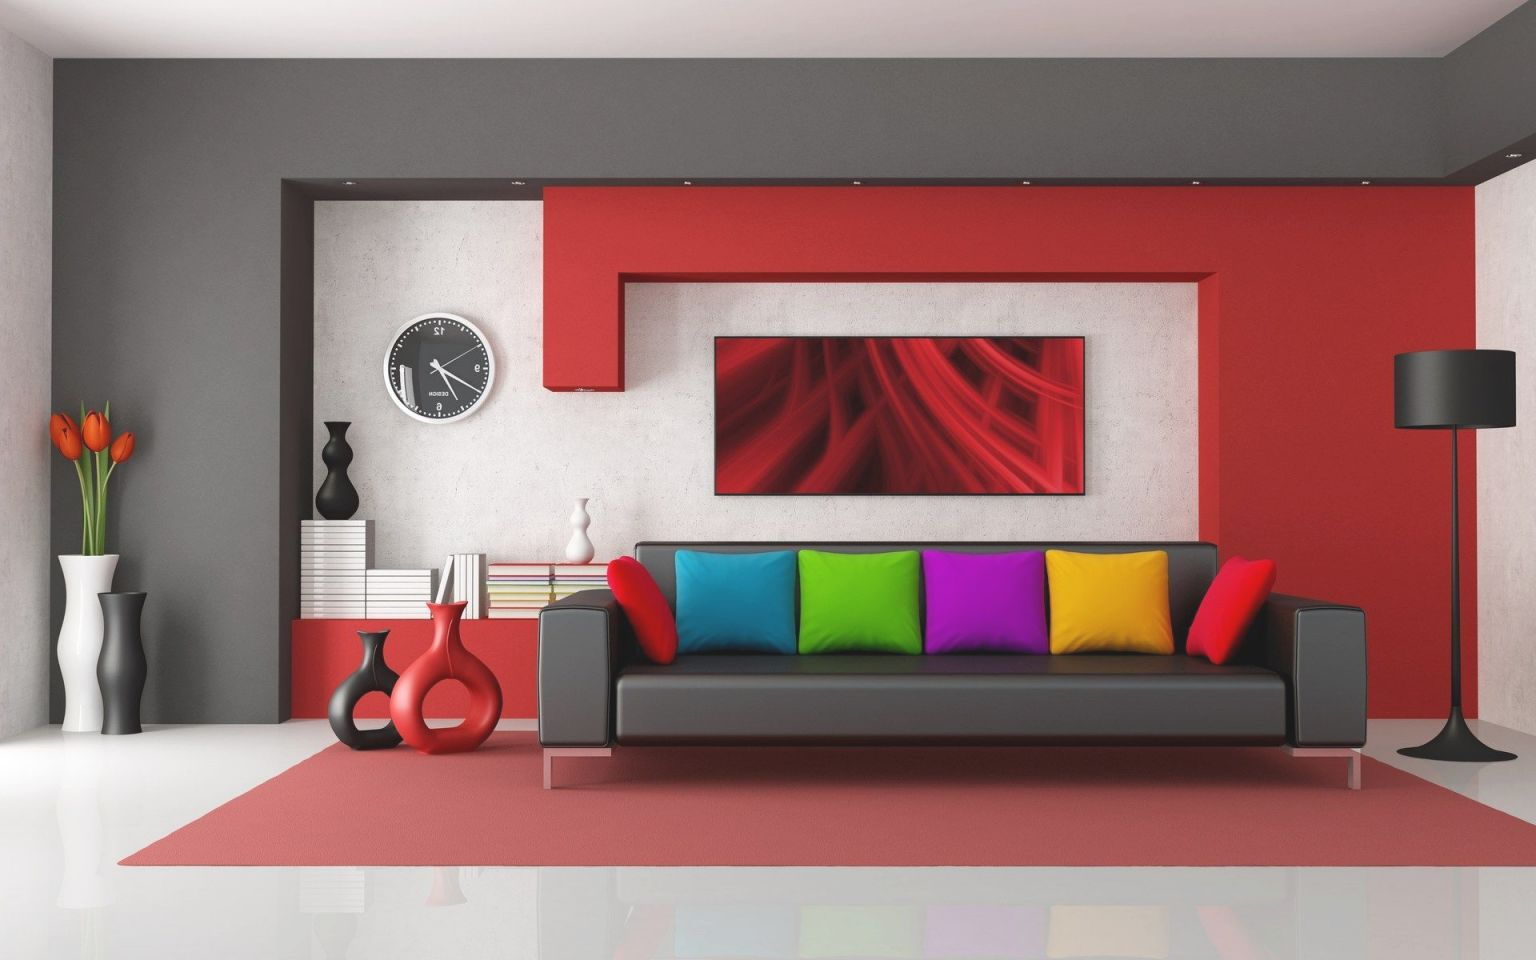 Bedroom-Colorful-Living-Room-Ideas-2014-For-Clutter-Free-And in 15 Gallery Inspiration For Living Room Decorating Ideas 2014